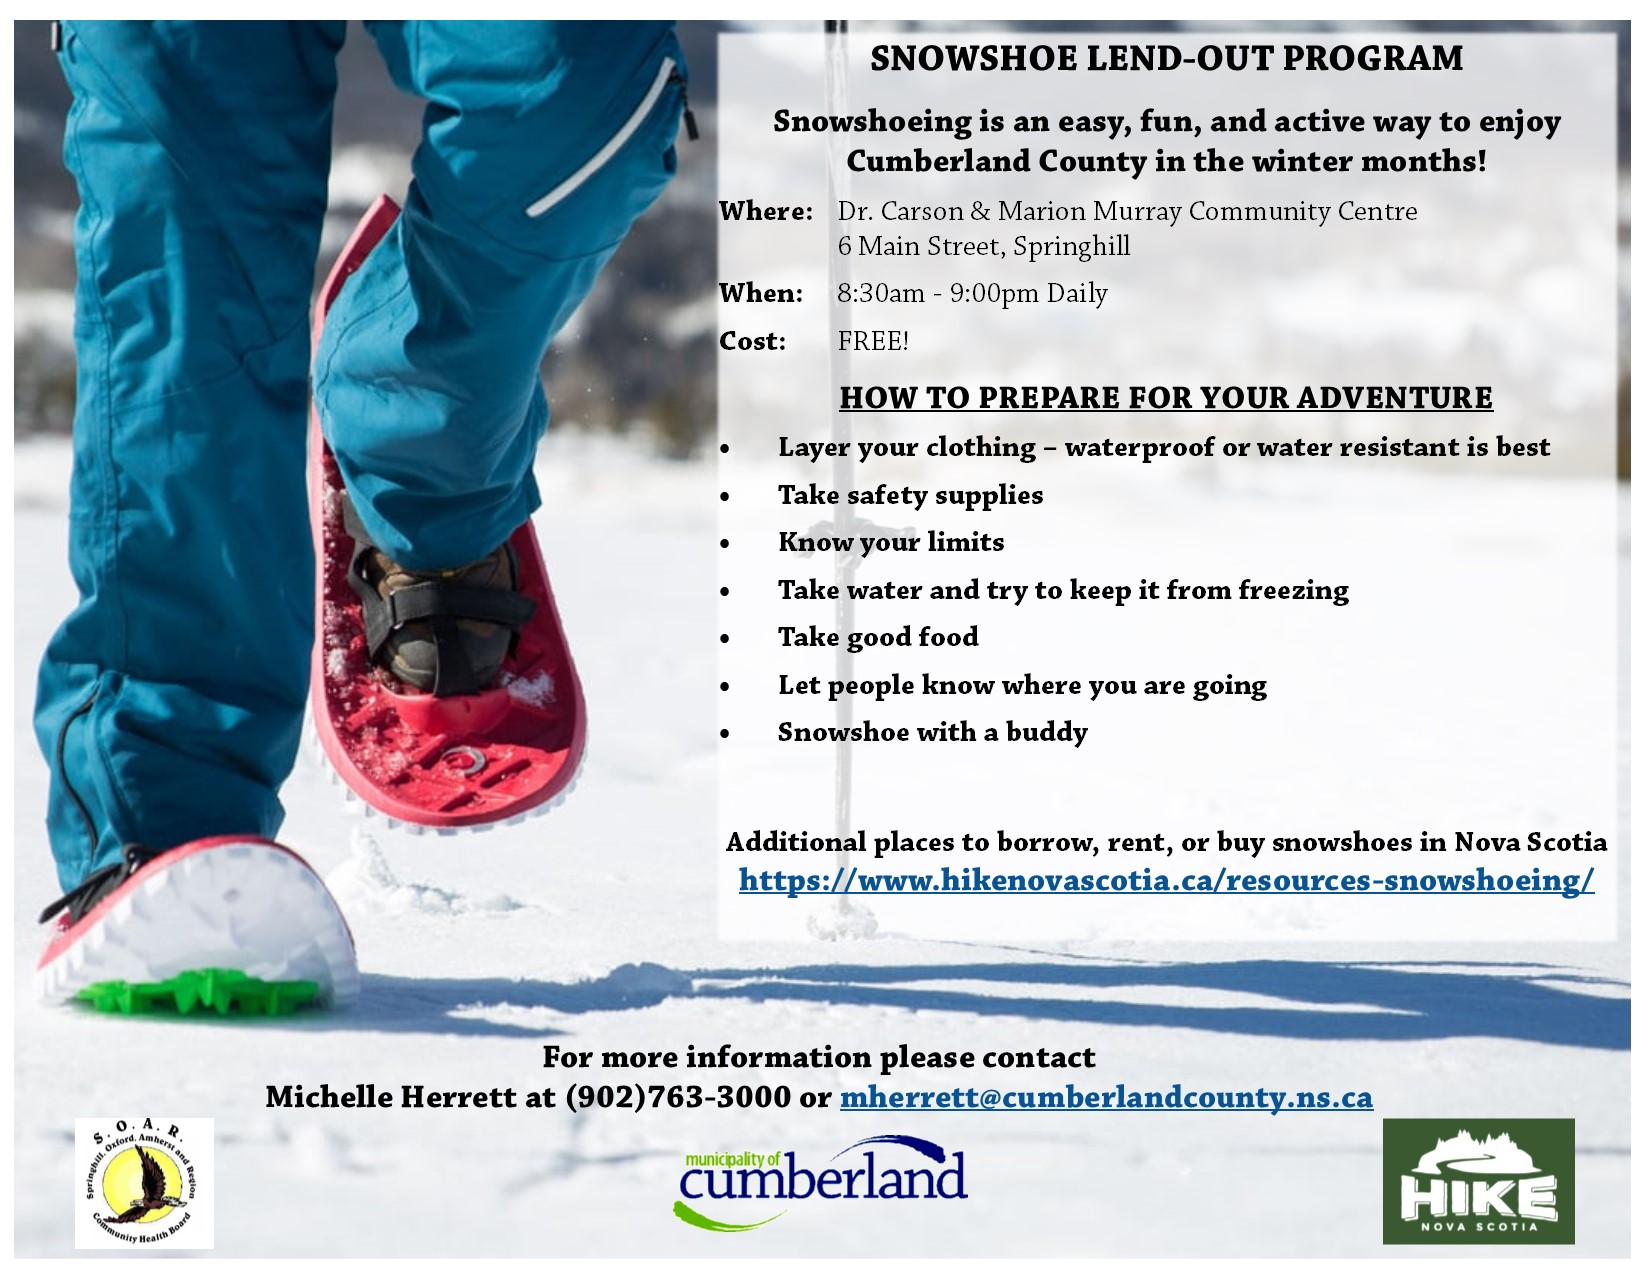 Snowshoe Lend Out Program